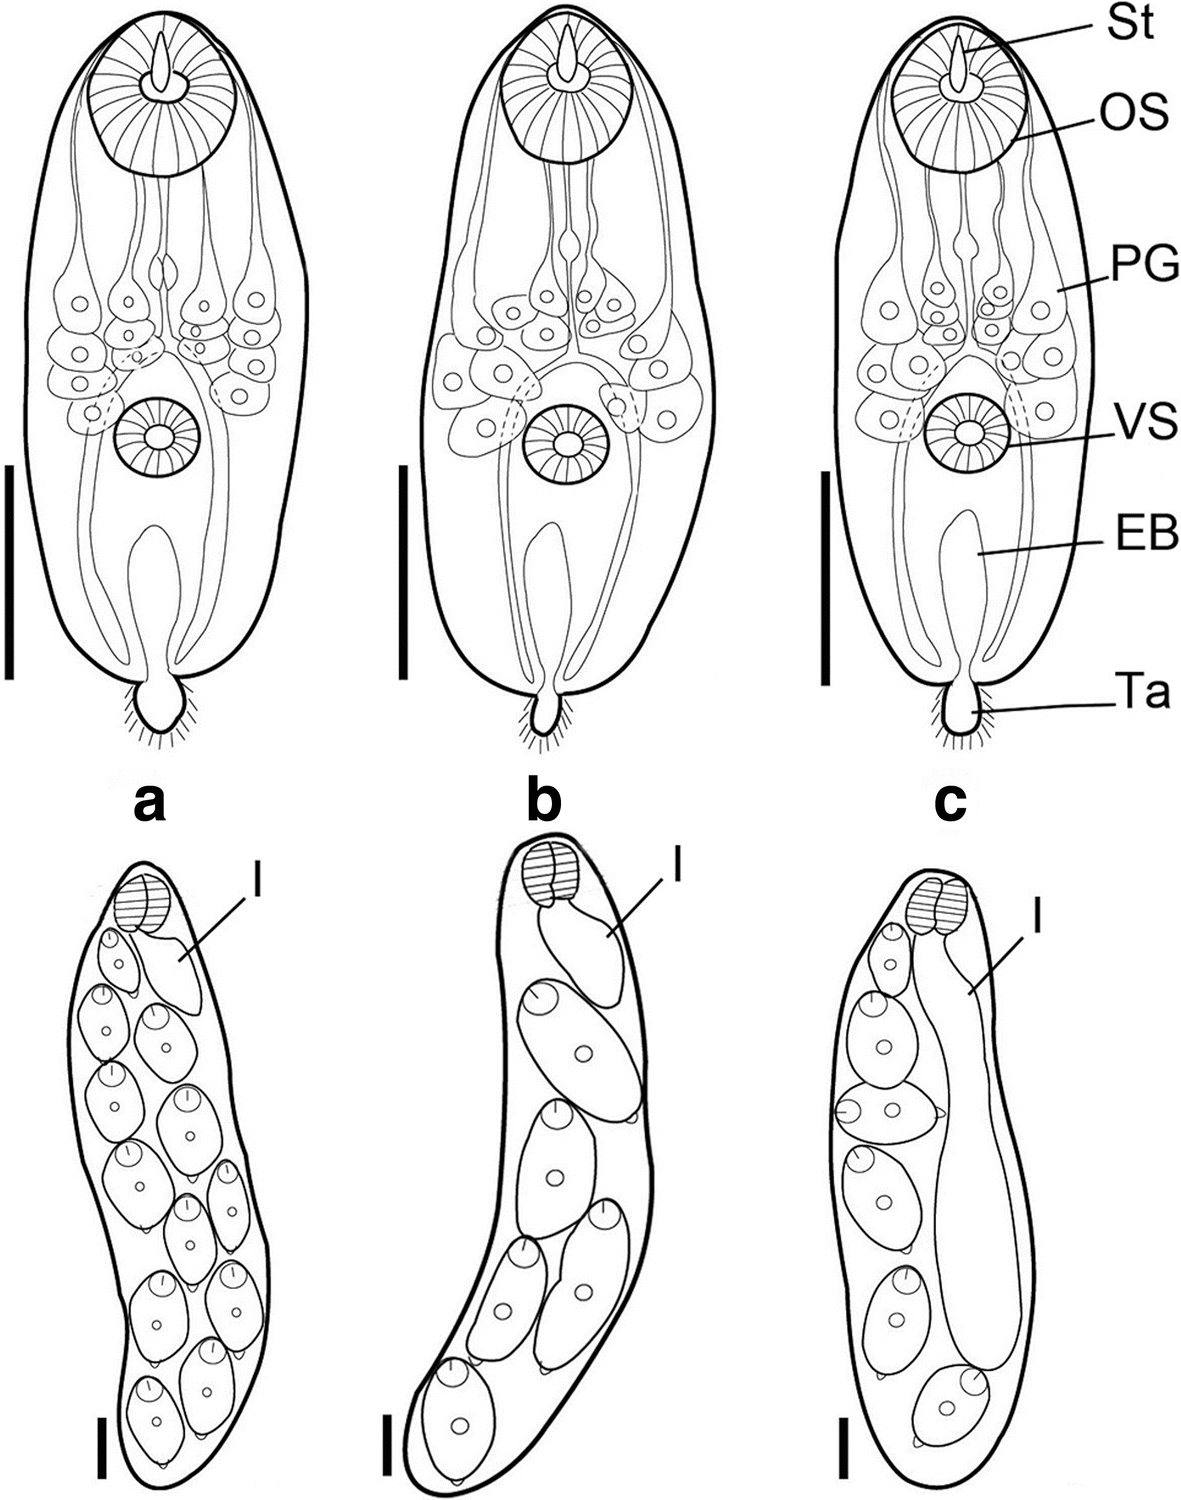 First Intermediate Hosts Of Paragonimus Spp In Vietnam And